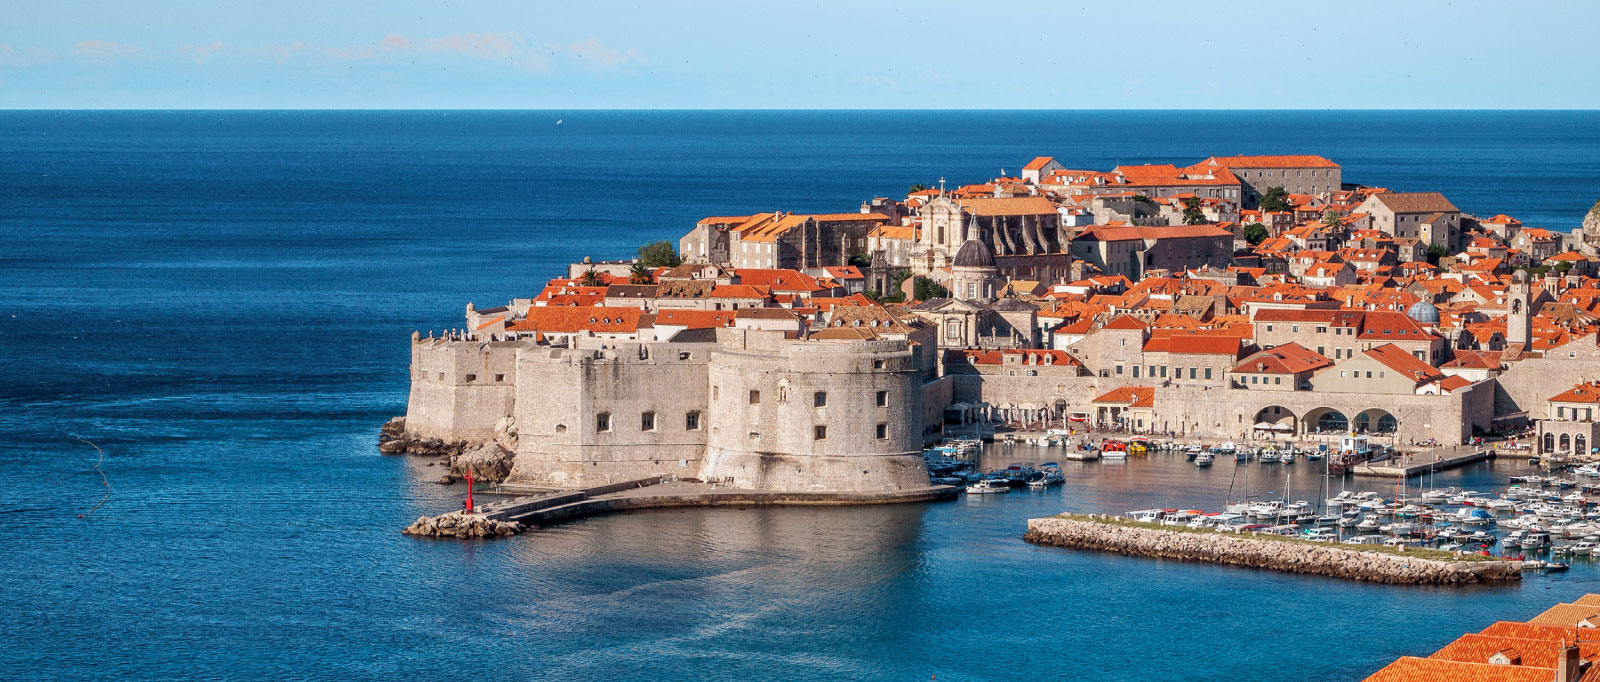 accomoodation-in-dubrovnik-featured-image-3-1